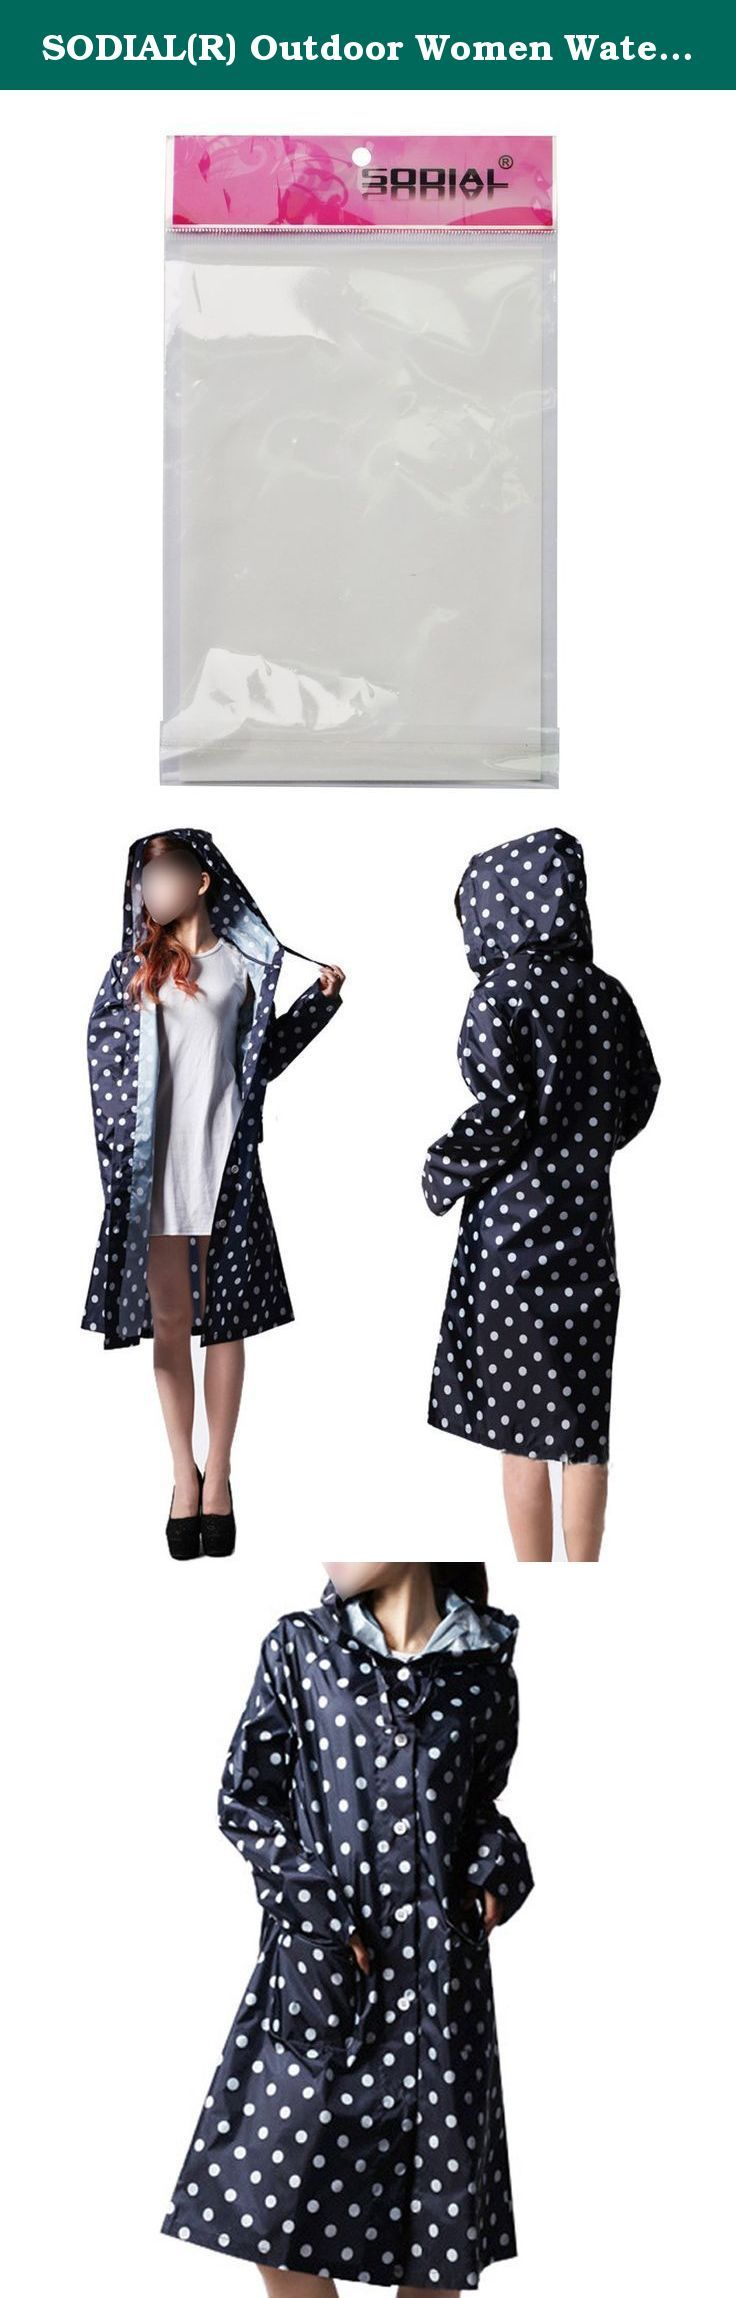 SODIAL(R) Outdoor Women Waterproof Riding Clothes Raincoat Poncho Pocket Polka Dot Hooded Knee Long Rainwear Nylon Navy Blue. * SODIAL is a registered trademark. ONLY Authorized seller of SODIAL can sell under SODIAL listings.Our products will enhance your experience to unparalleled inspiration. SODIAL(R) Outdoor Women Waterproof Riding Clothes Raincoat Poncho Pocket Polka Dot Hooded Knee Long Rainwear Nylon Navy Blue Shoulder: Approx 42cm Sleeve: Approx 70cm Bust: 102cm Waist: 104cm…